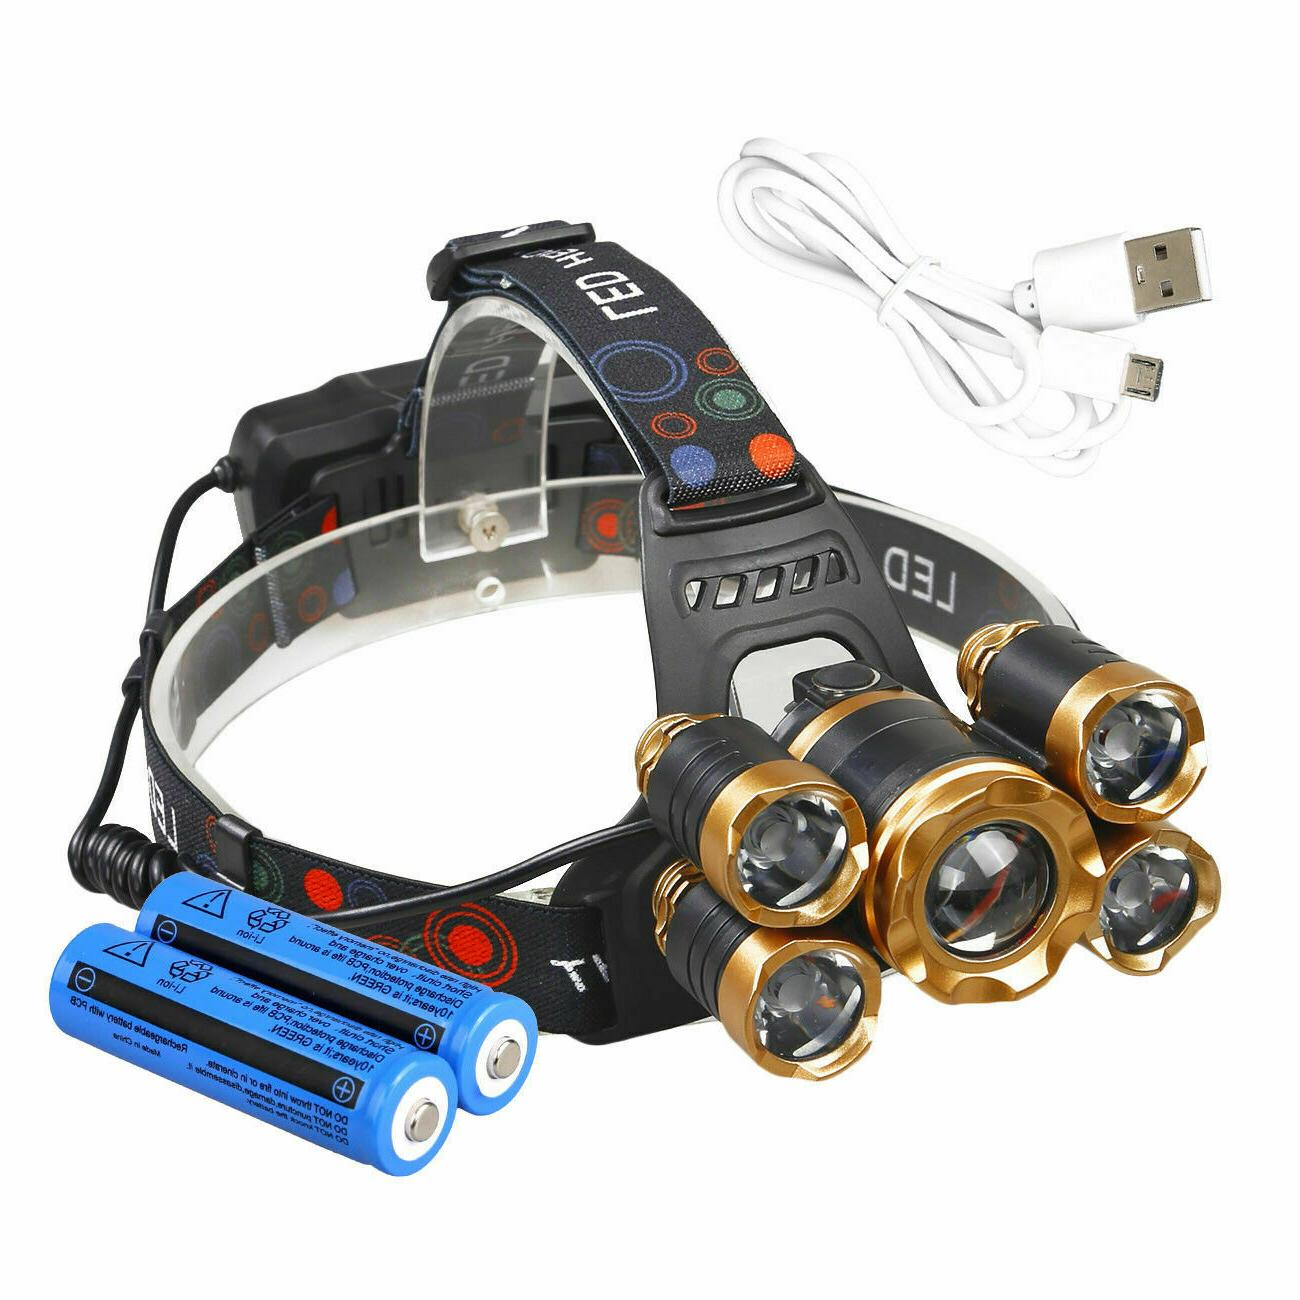 Super-bright XM-L Headlight Head Torch